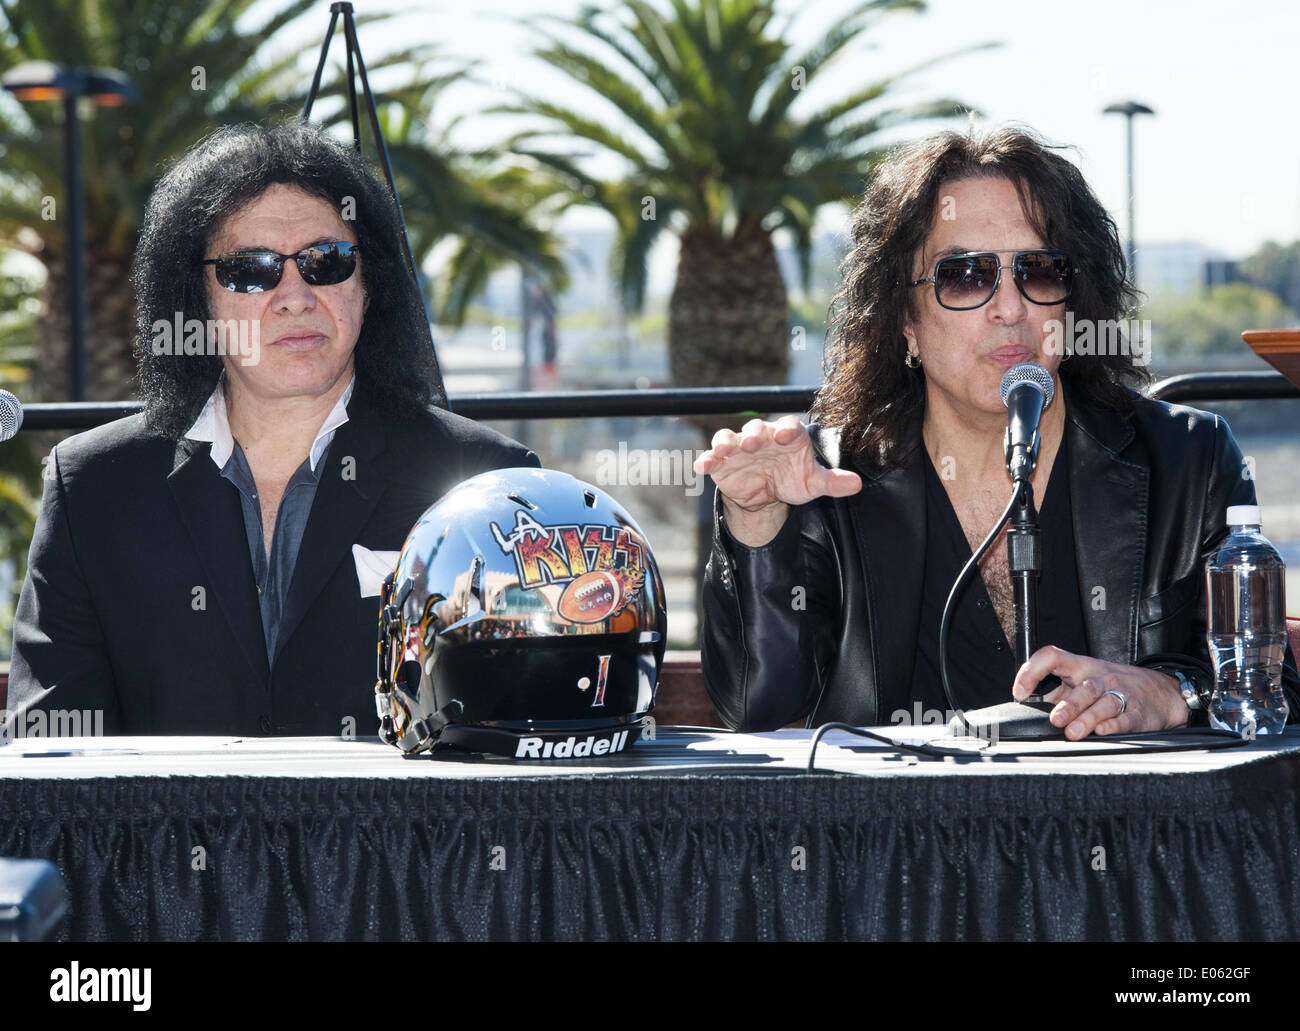 Anaheim, California, USA. 10th Mar, 2014. Kiss band members GENE SIMMONS and PAUL STANLEY pose with the newly unveiled LA Kiss Arena Football helmet on Monday morning at Honda Center. The newly formed LA Kiss, Arena Football's newest team, held their first media event at The Honda Center on Monday morning, March 10, 2014, in Anaheim. The LA Kiss, named after famed rock and roll band, Kiss, boasts two members of the band as owners, Gene Simmons and Paul Stanley. The co-owners announced a free Kiss concert for all season ticket holders as part of a $99 dollar package. (Credit Image: © Davi - Stock Image